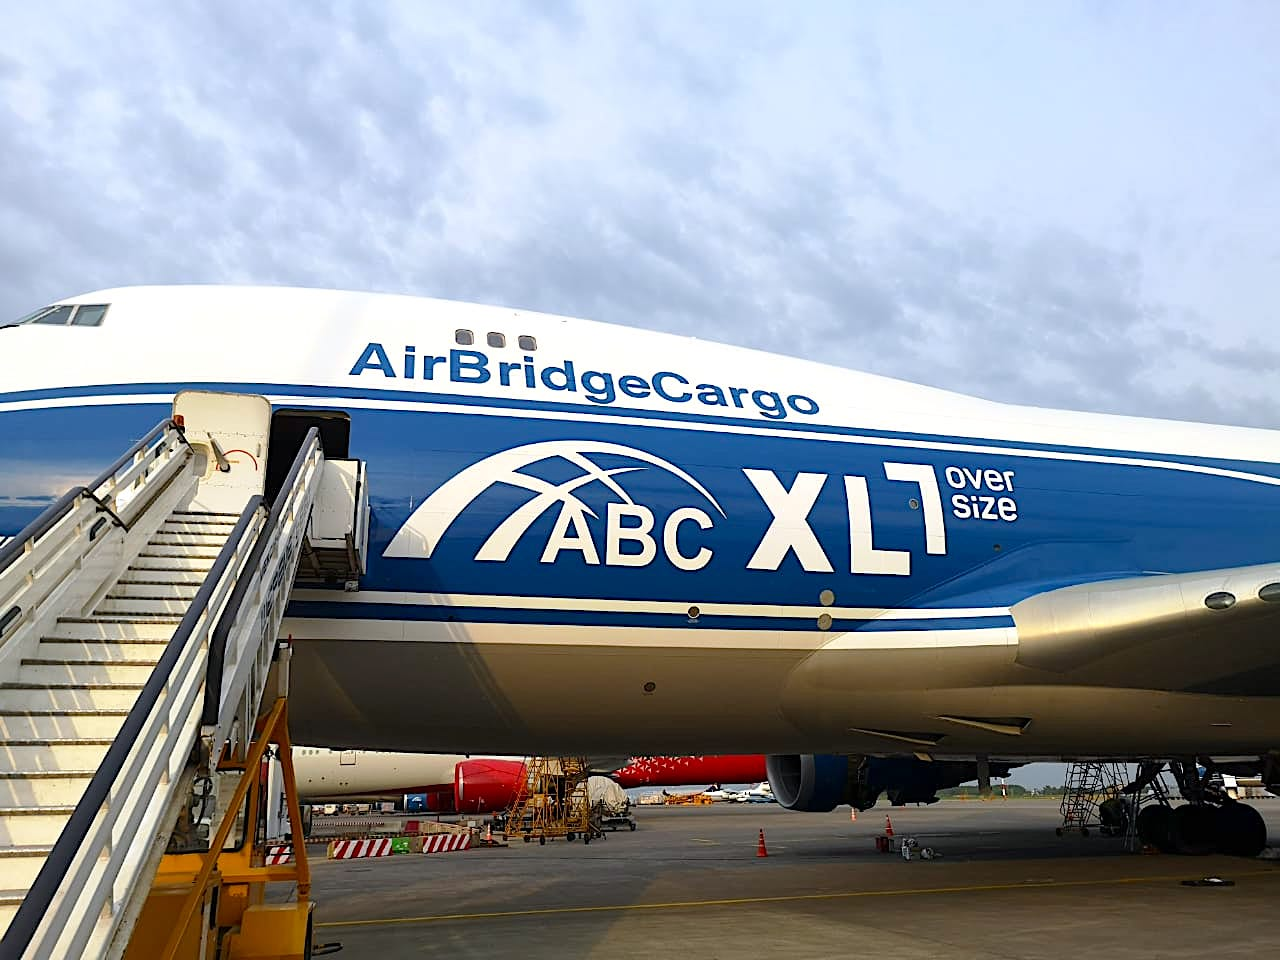 ABC unveils 'abc XL' livery as outsized shipments up 10%